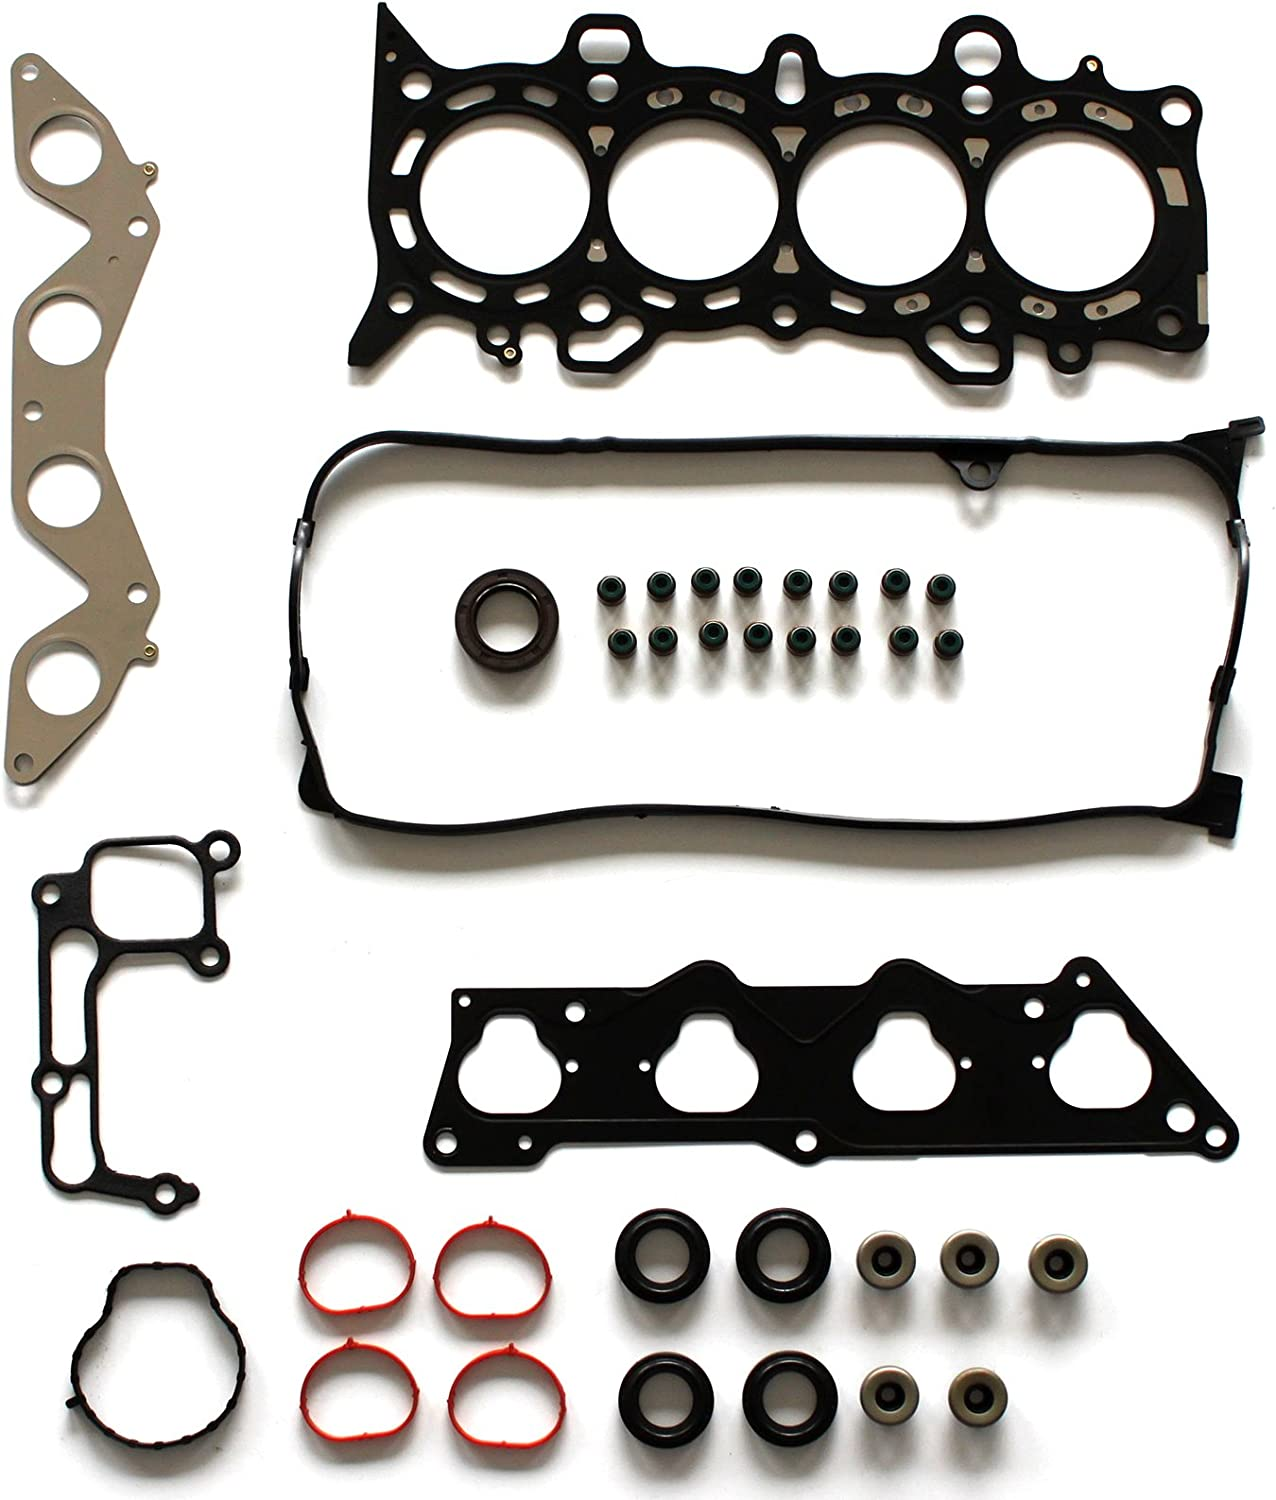 SCITOO Replacement for Cylinder Head Gasket Set Fit Honda Civic EX HX 1.7L D17A2 D17A6 2001-2005 Engine Head Gaskets Kit Set